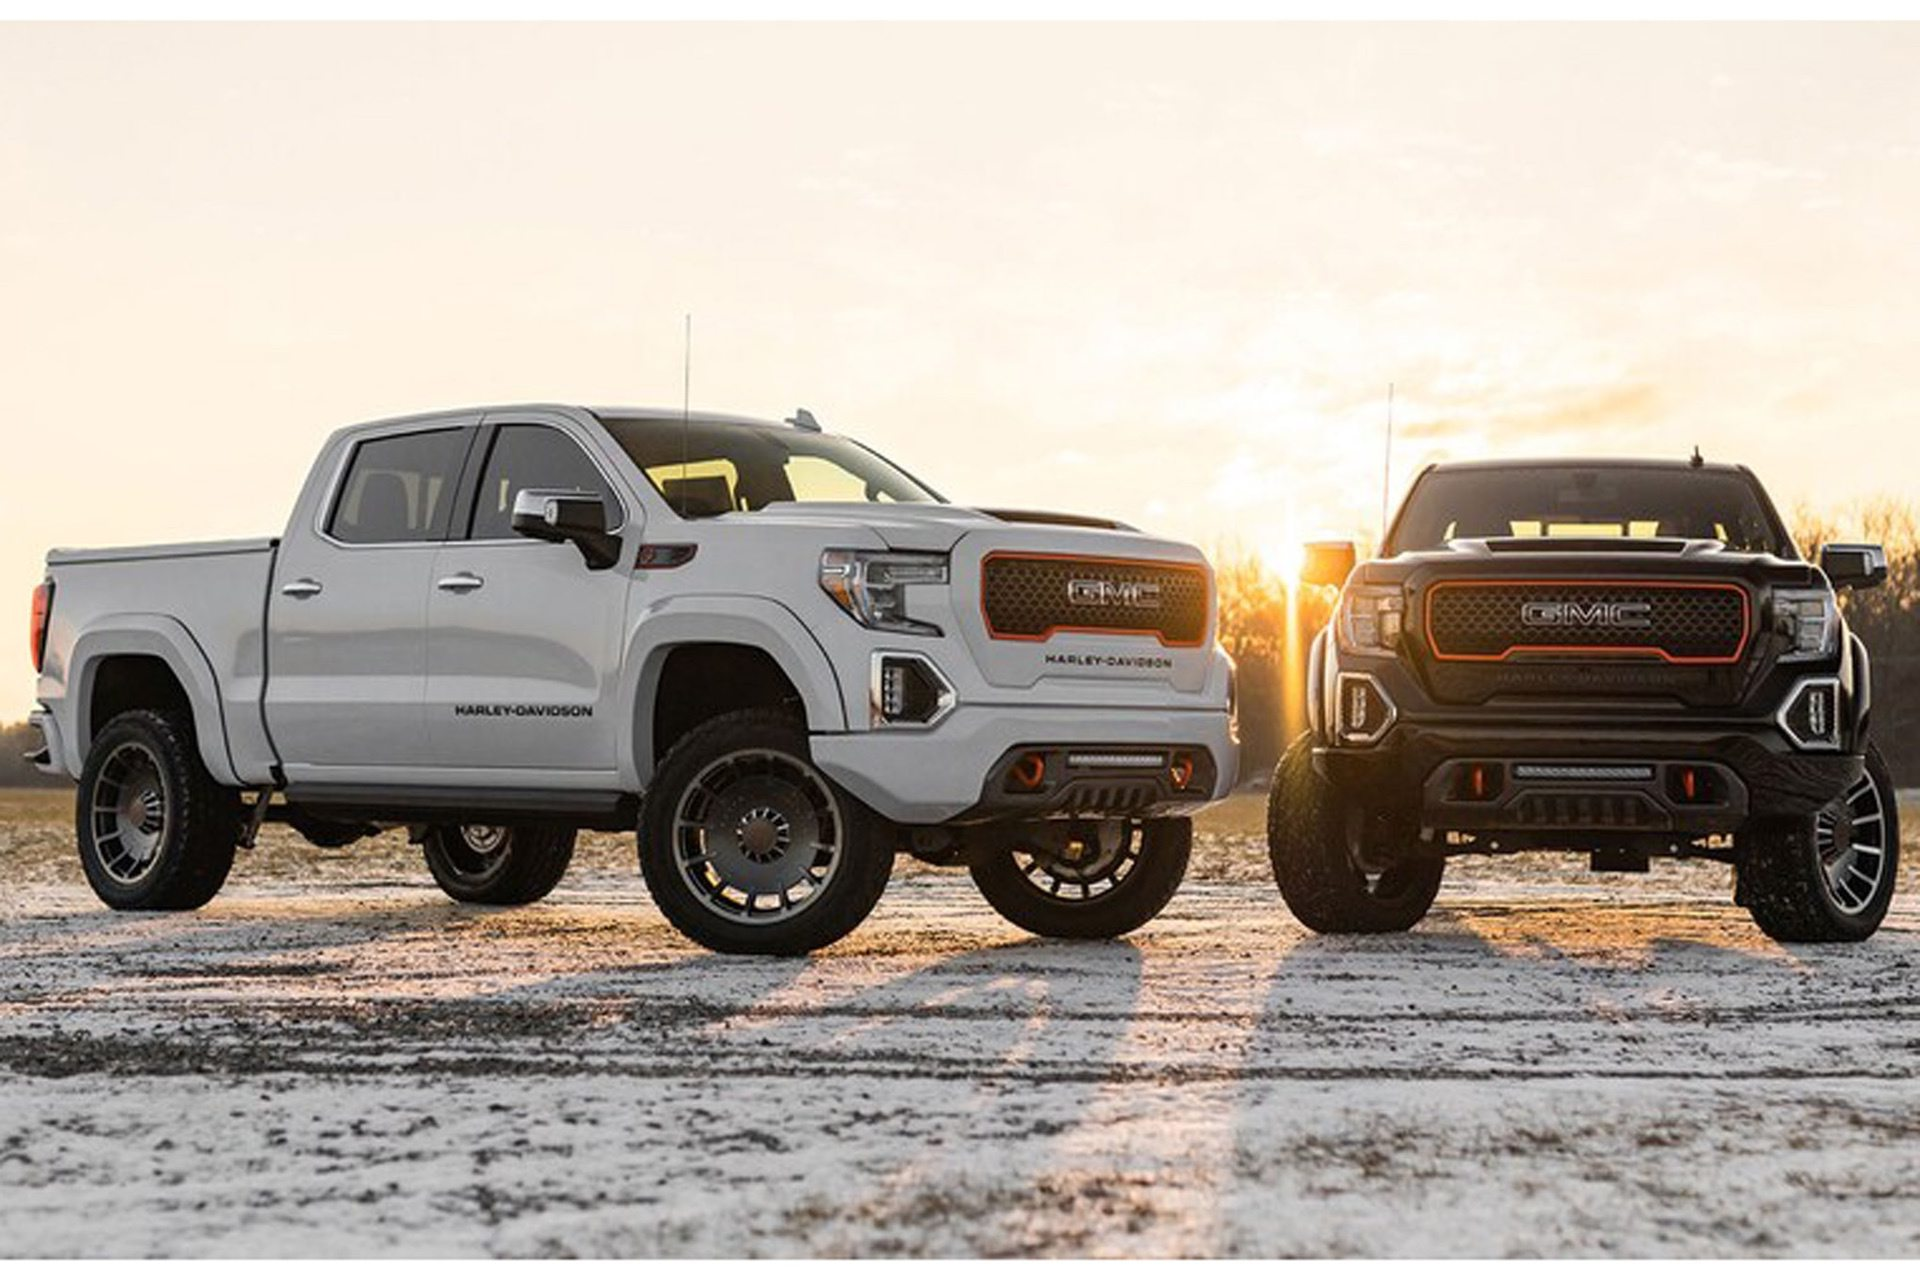 2020-GMC-Sierra-1500-Harley-Davidson-Edition-Tuscany-Automotive_0006